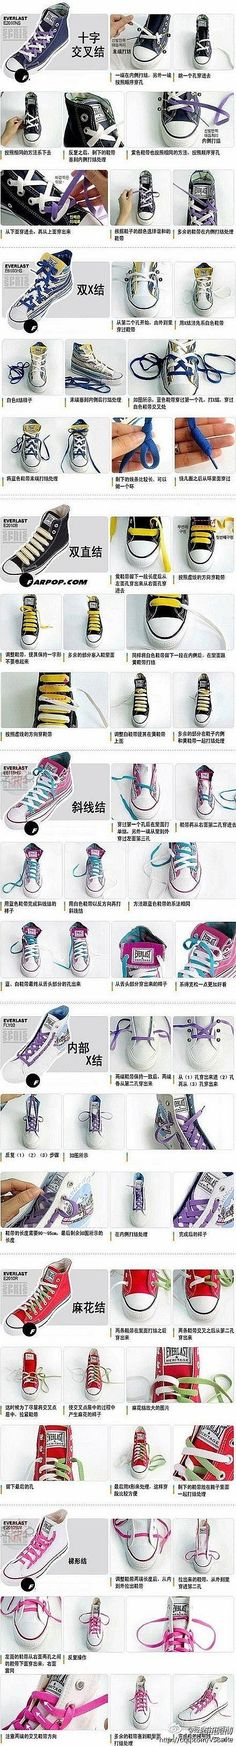 7 Best ways to lace shoes images | Ways to lace shoes, Shoes